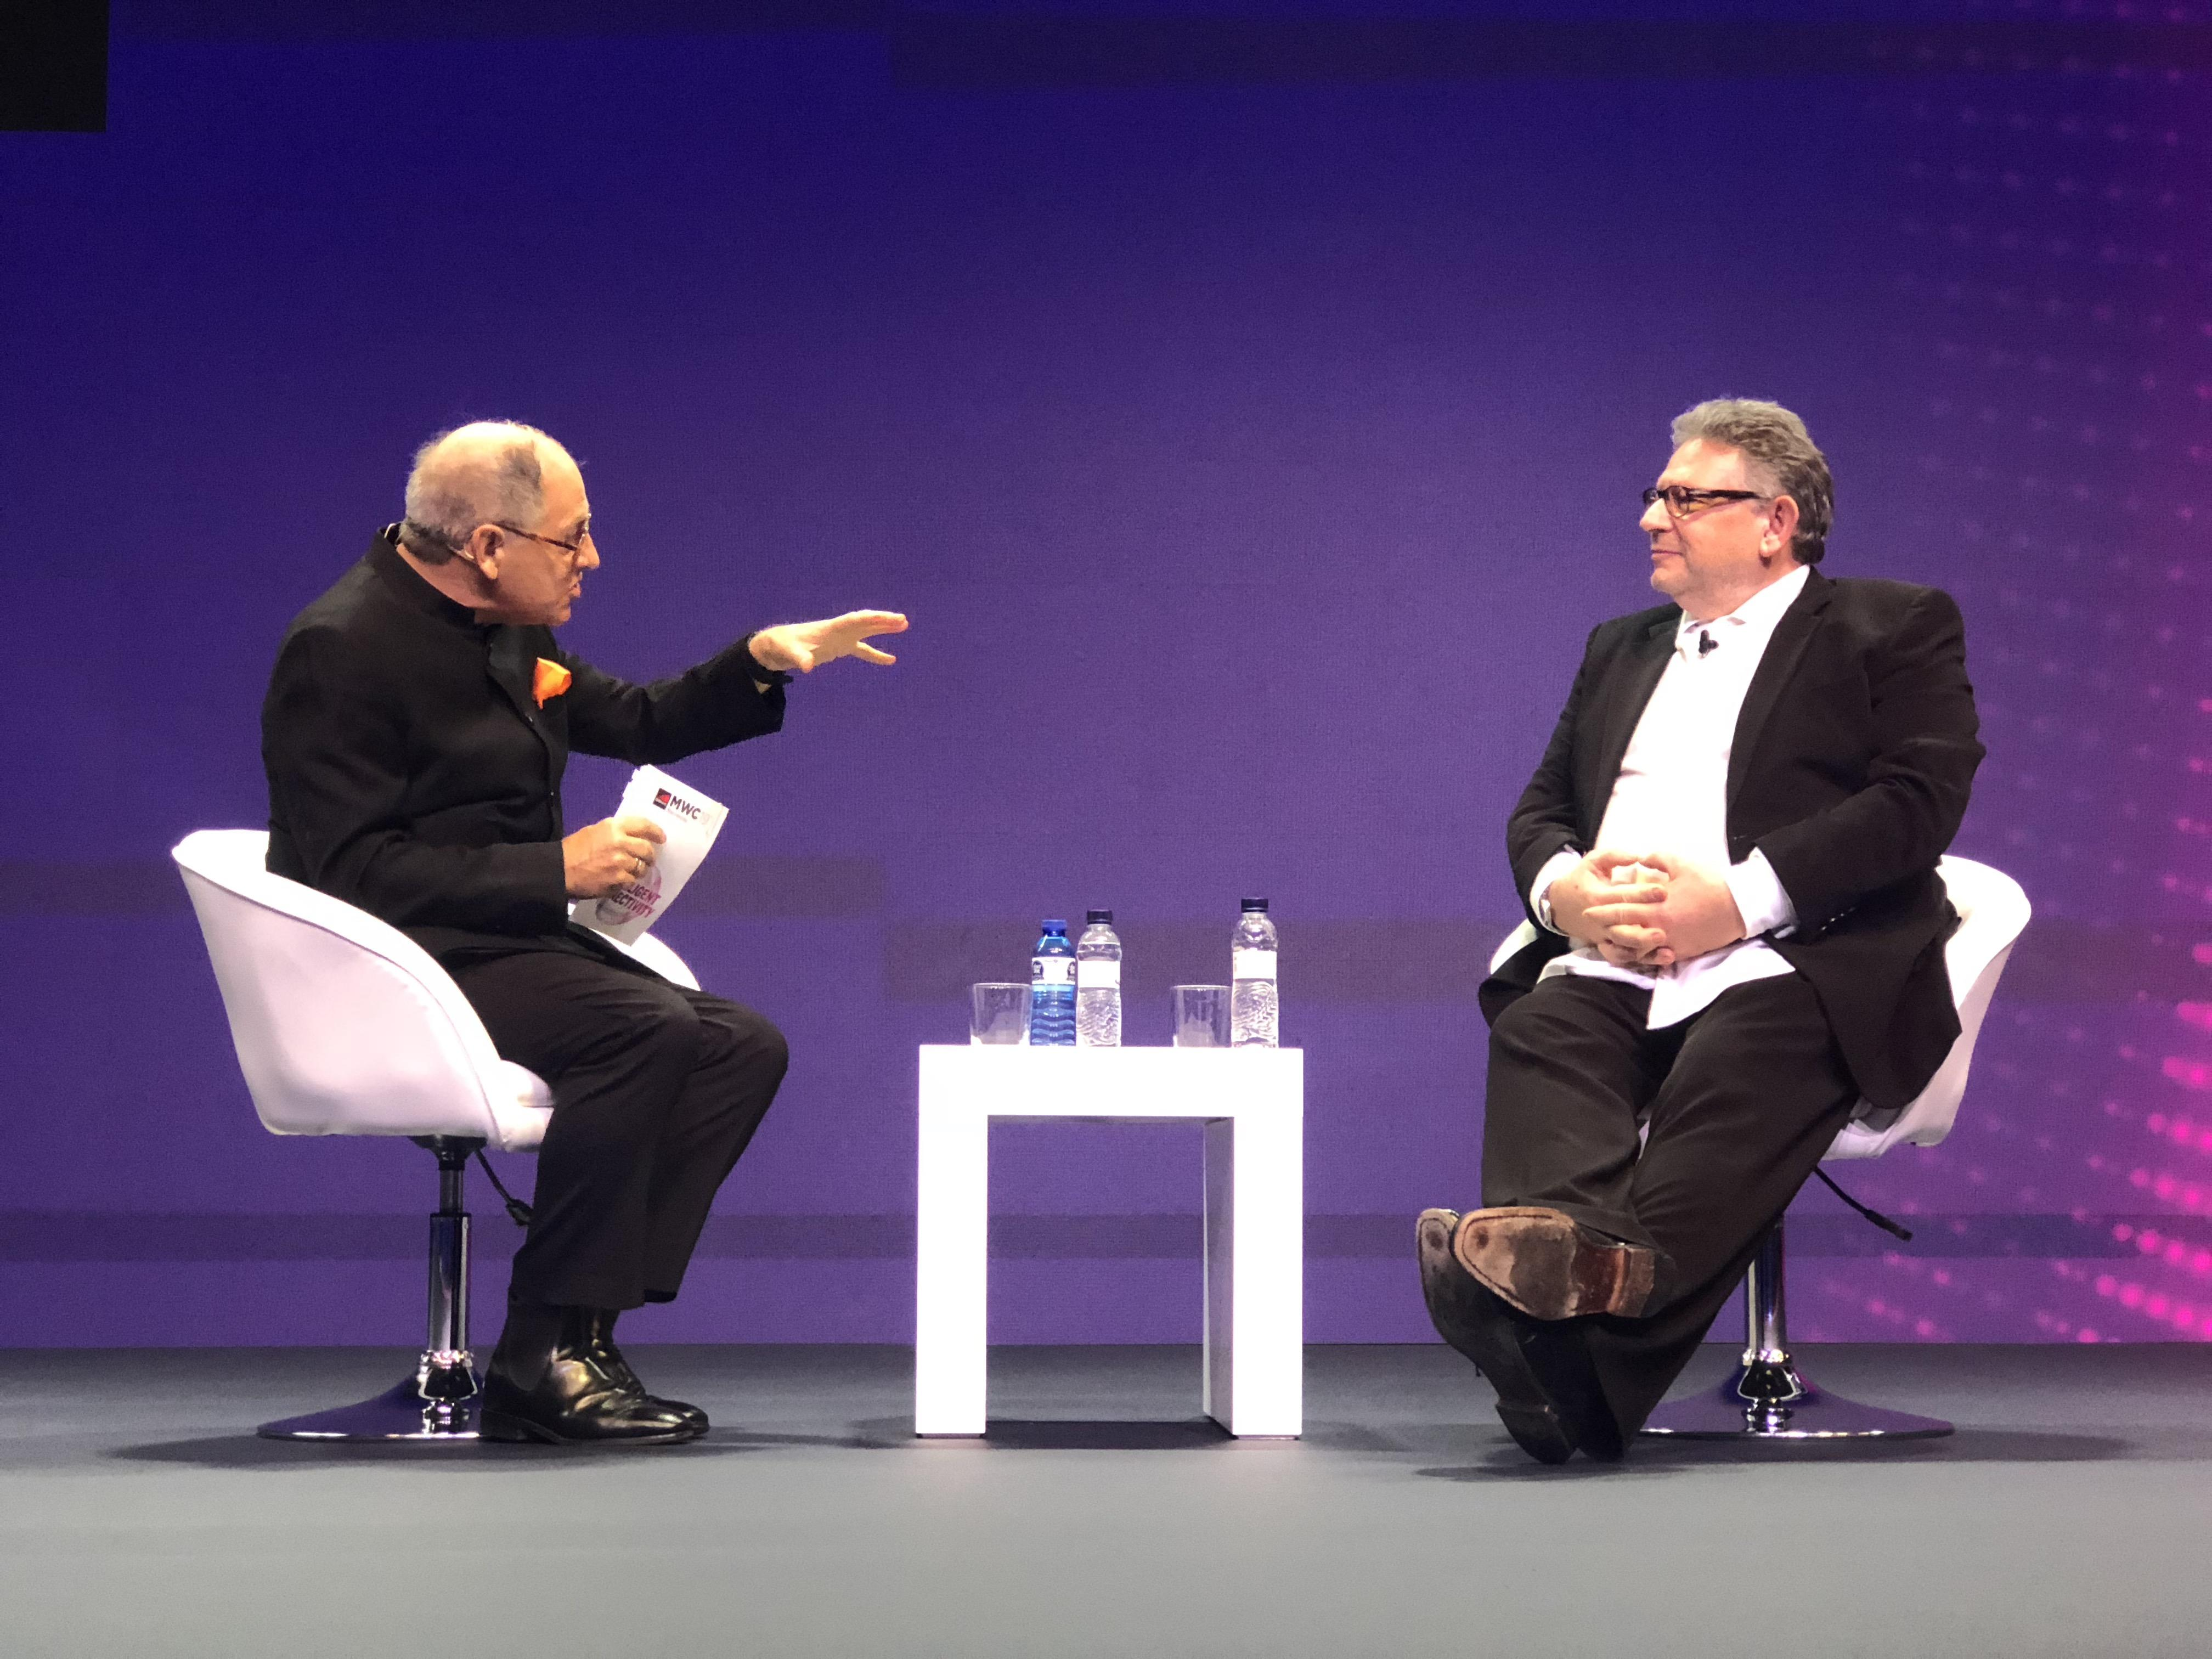 Universal Music Group CEO Lucian Grainge being interviewed on stage at MWC 2019 in Barcelona.